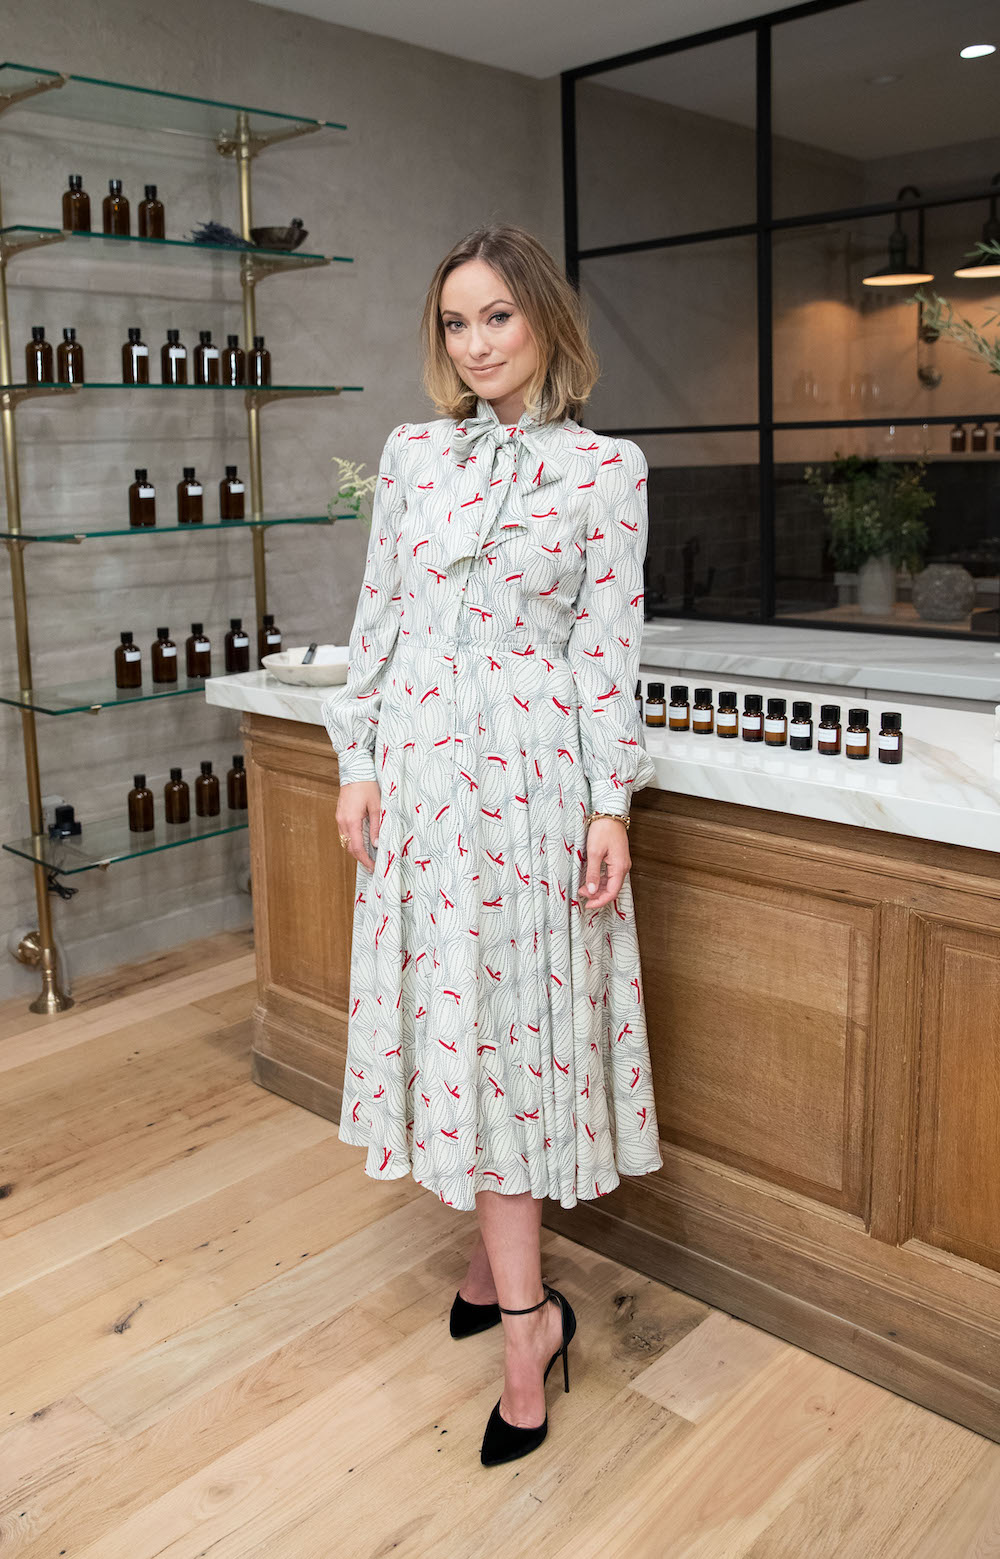 Olivia Wilde at the True Botanicals opening party